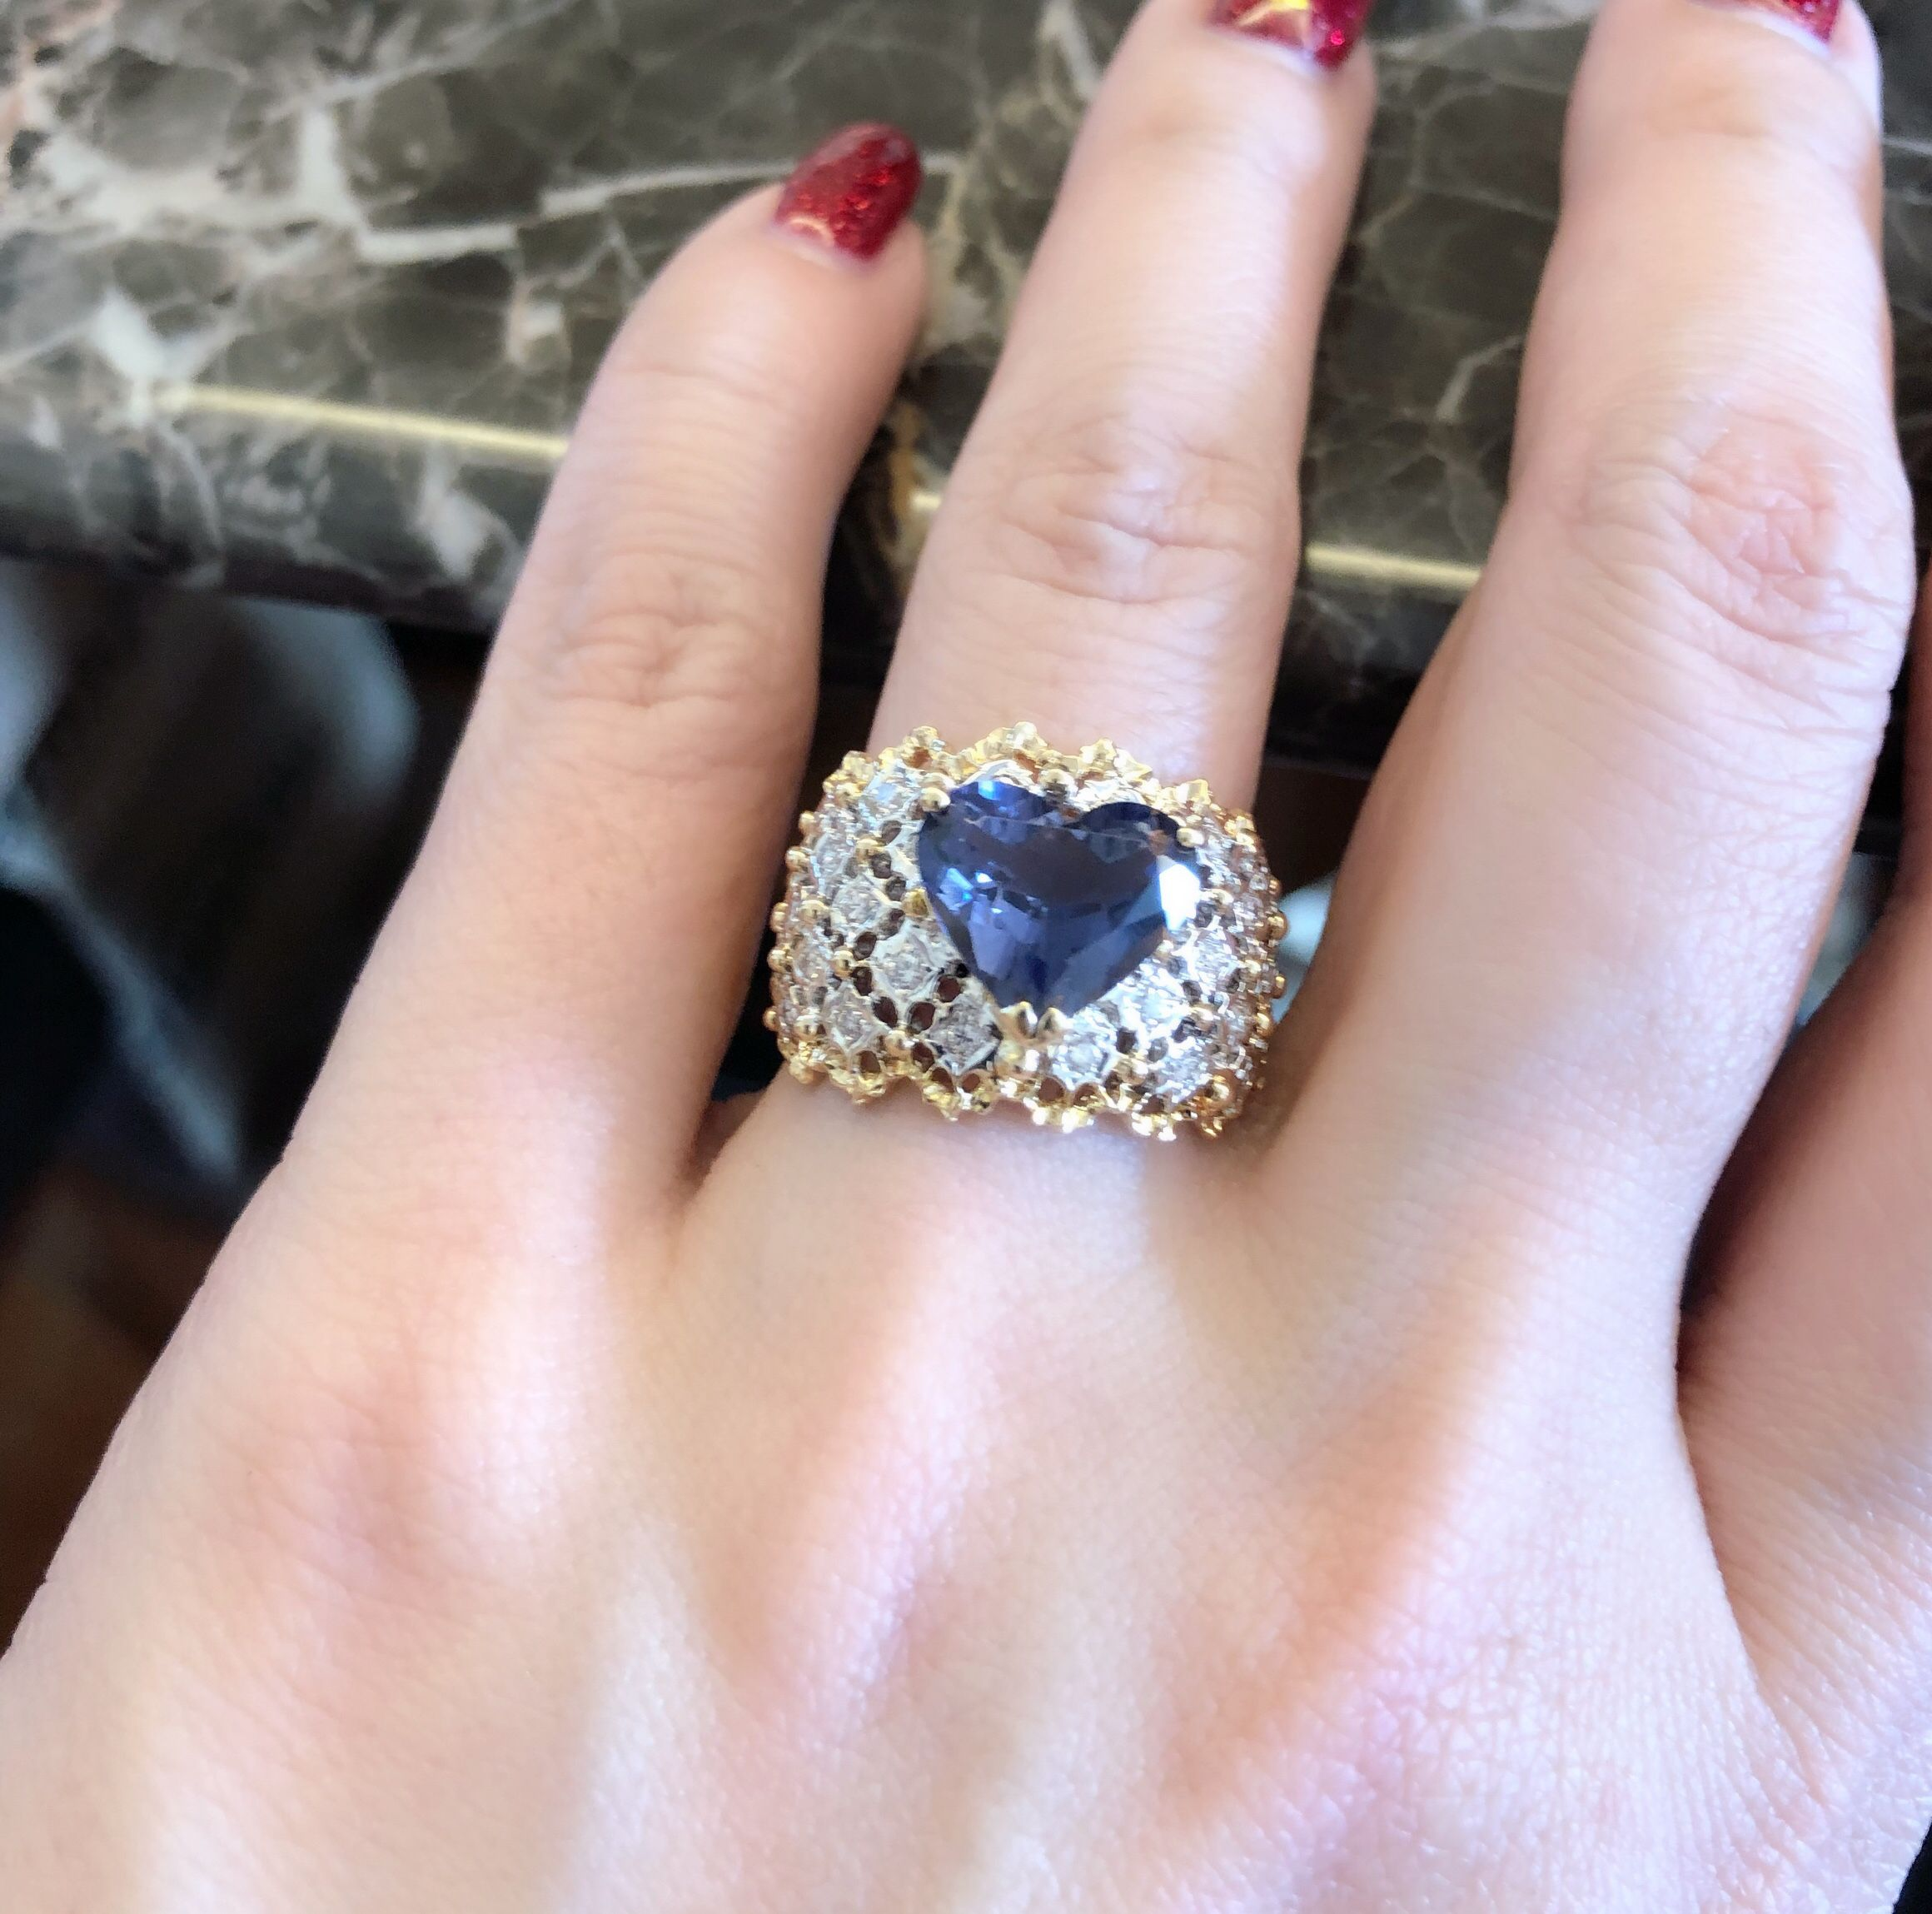 dark diamond engagement promise ring wedding sapphire ayjtooe blue shopping rings designer